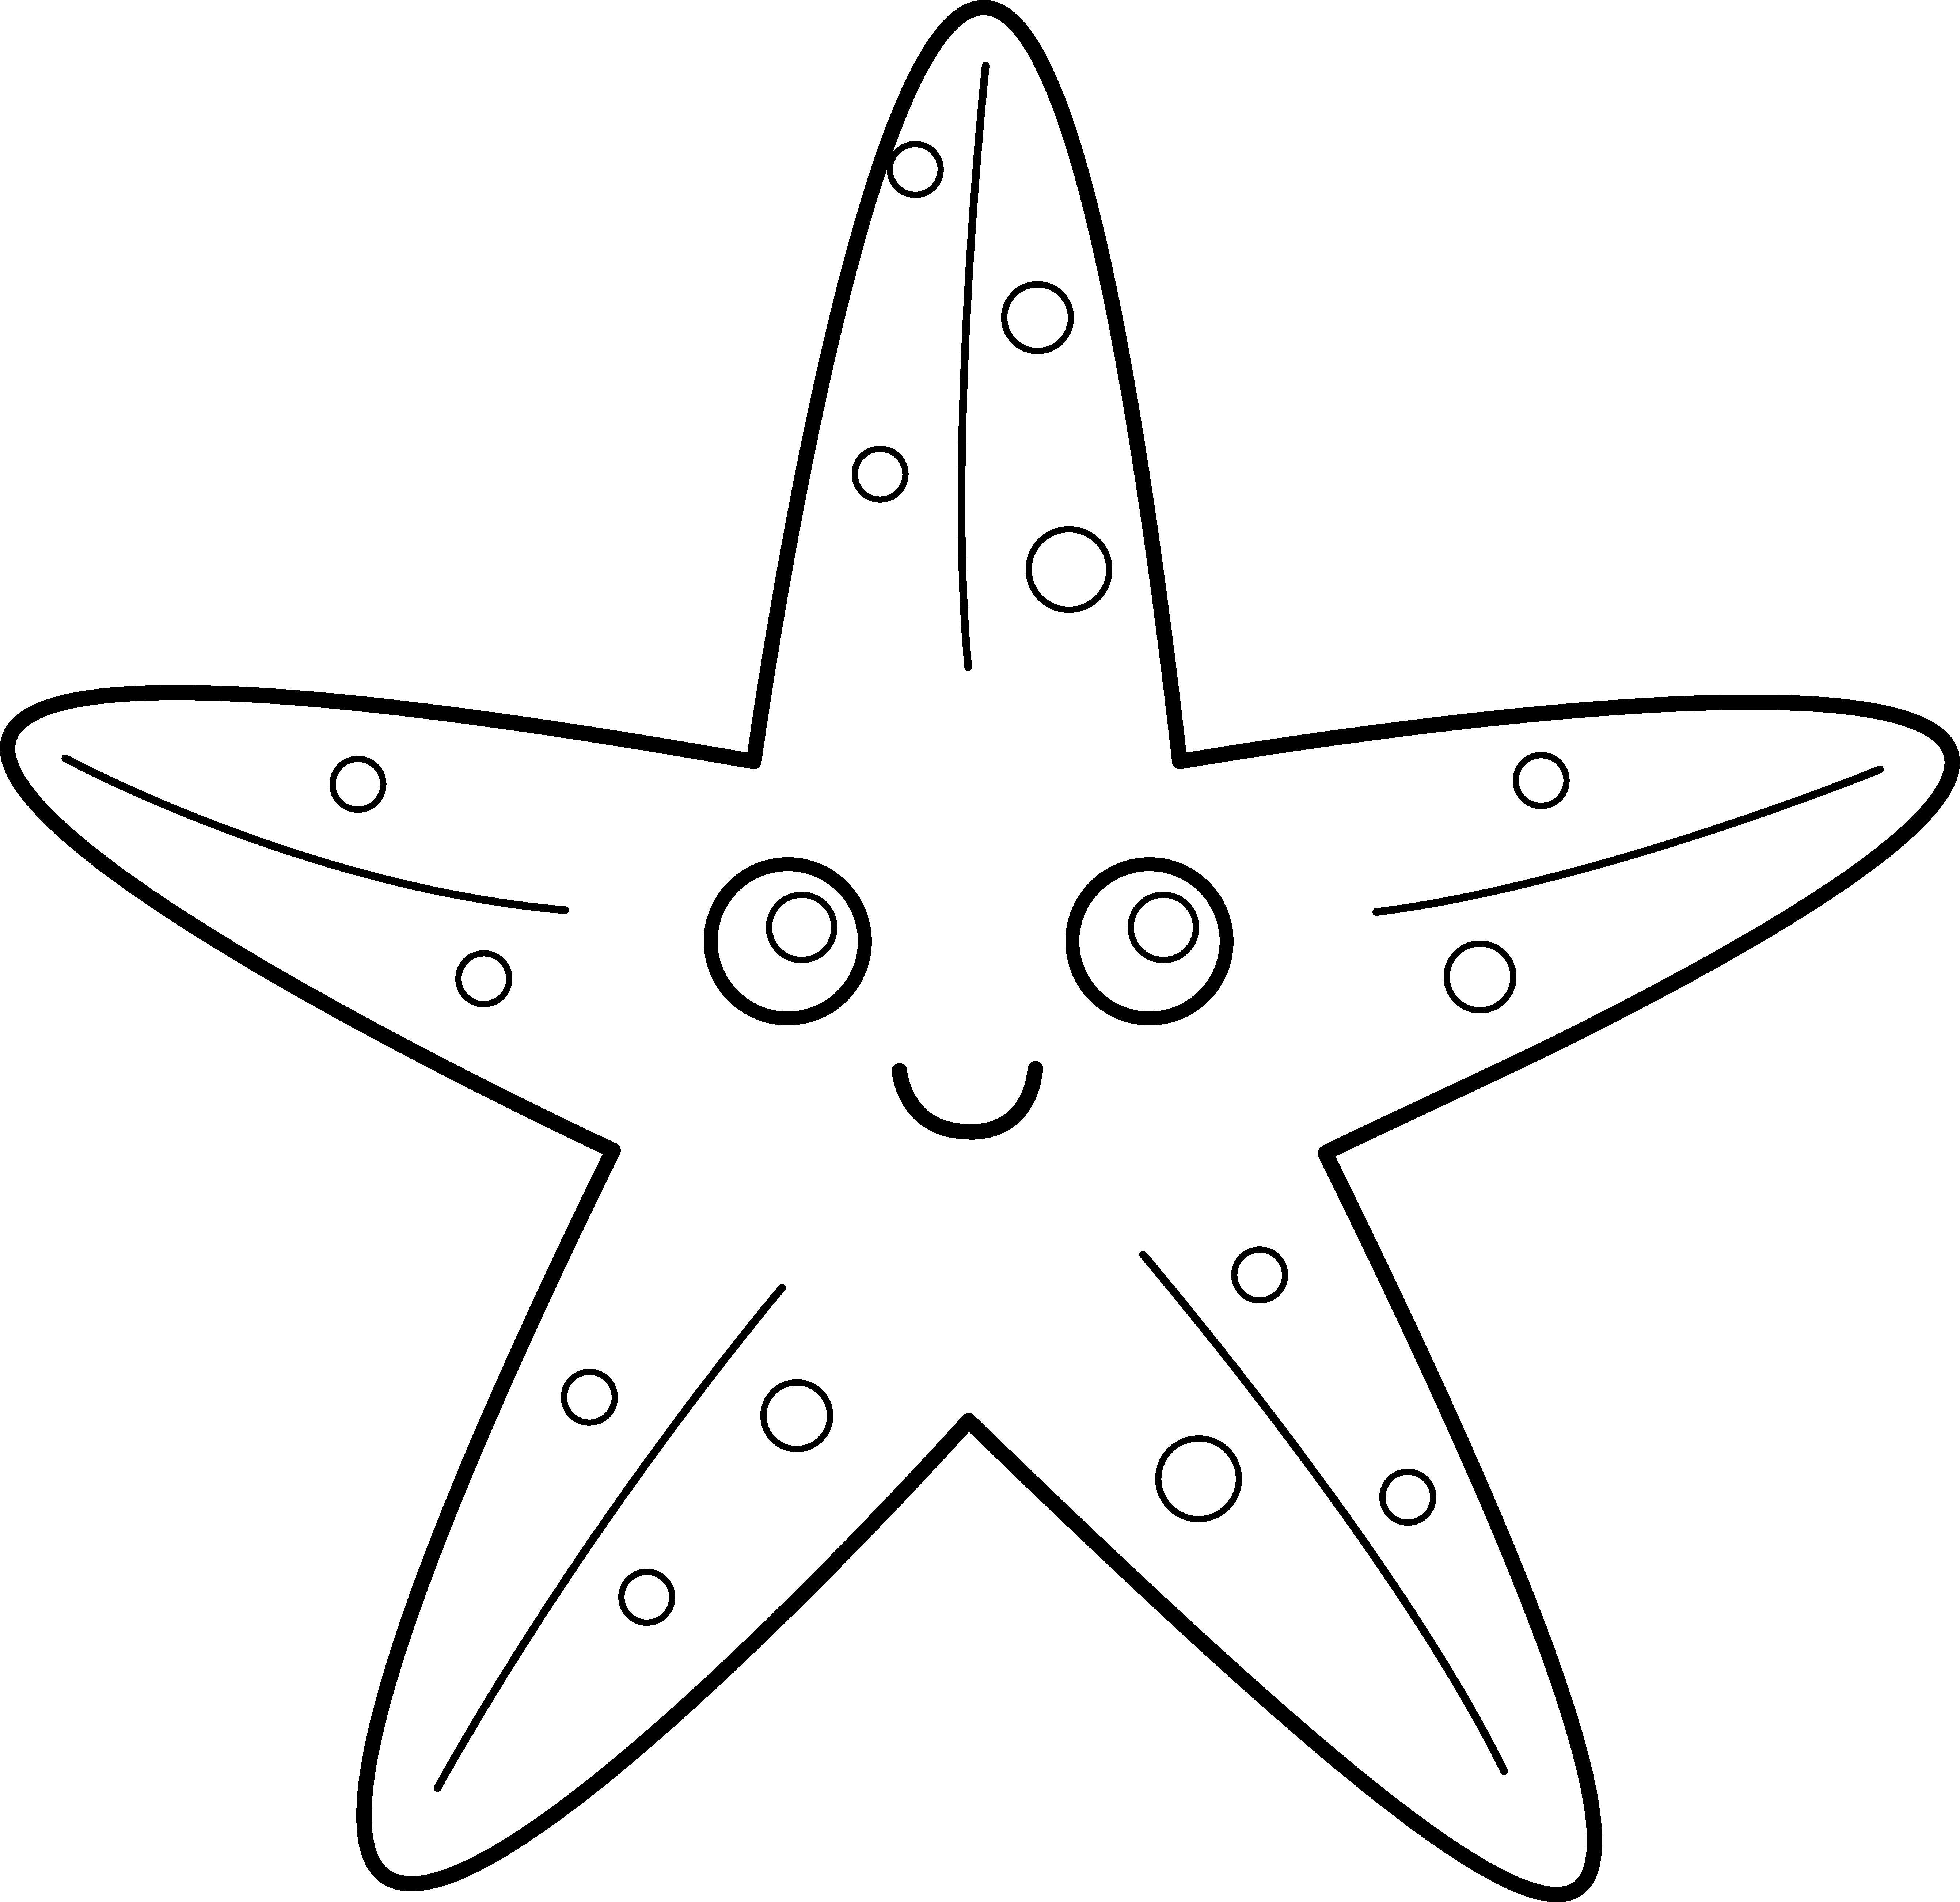 Free clipart of fish coloring pages banner library library Cute Starfish Line Art - Free Clip Art banner library library